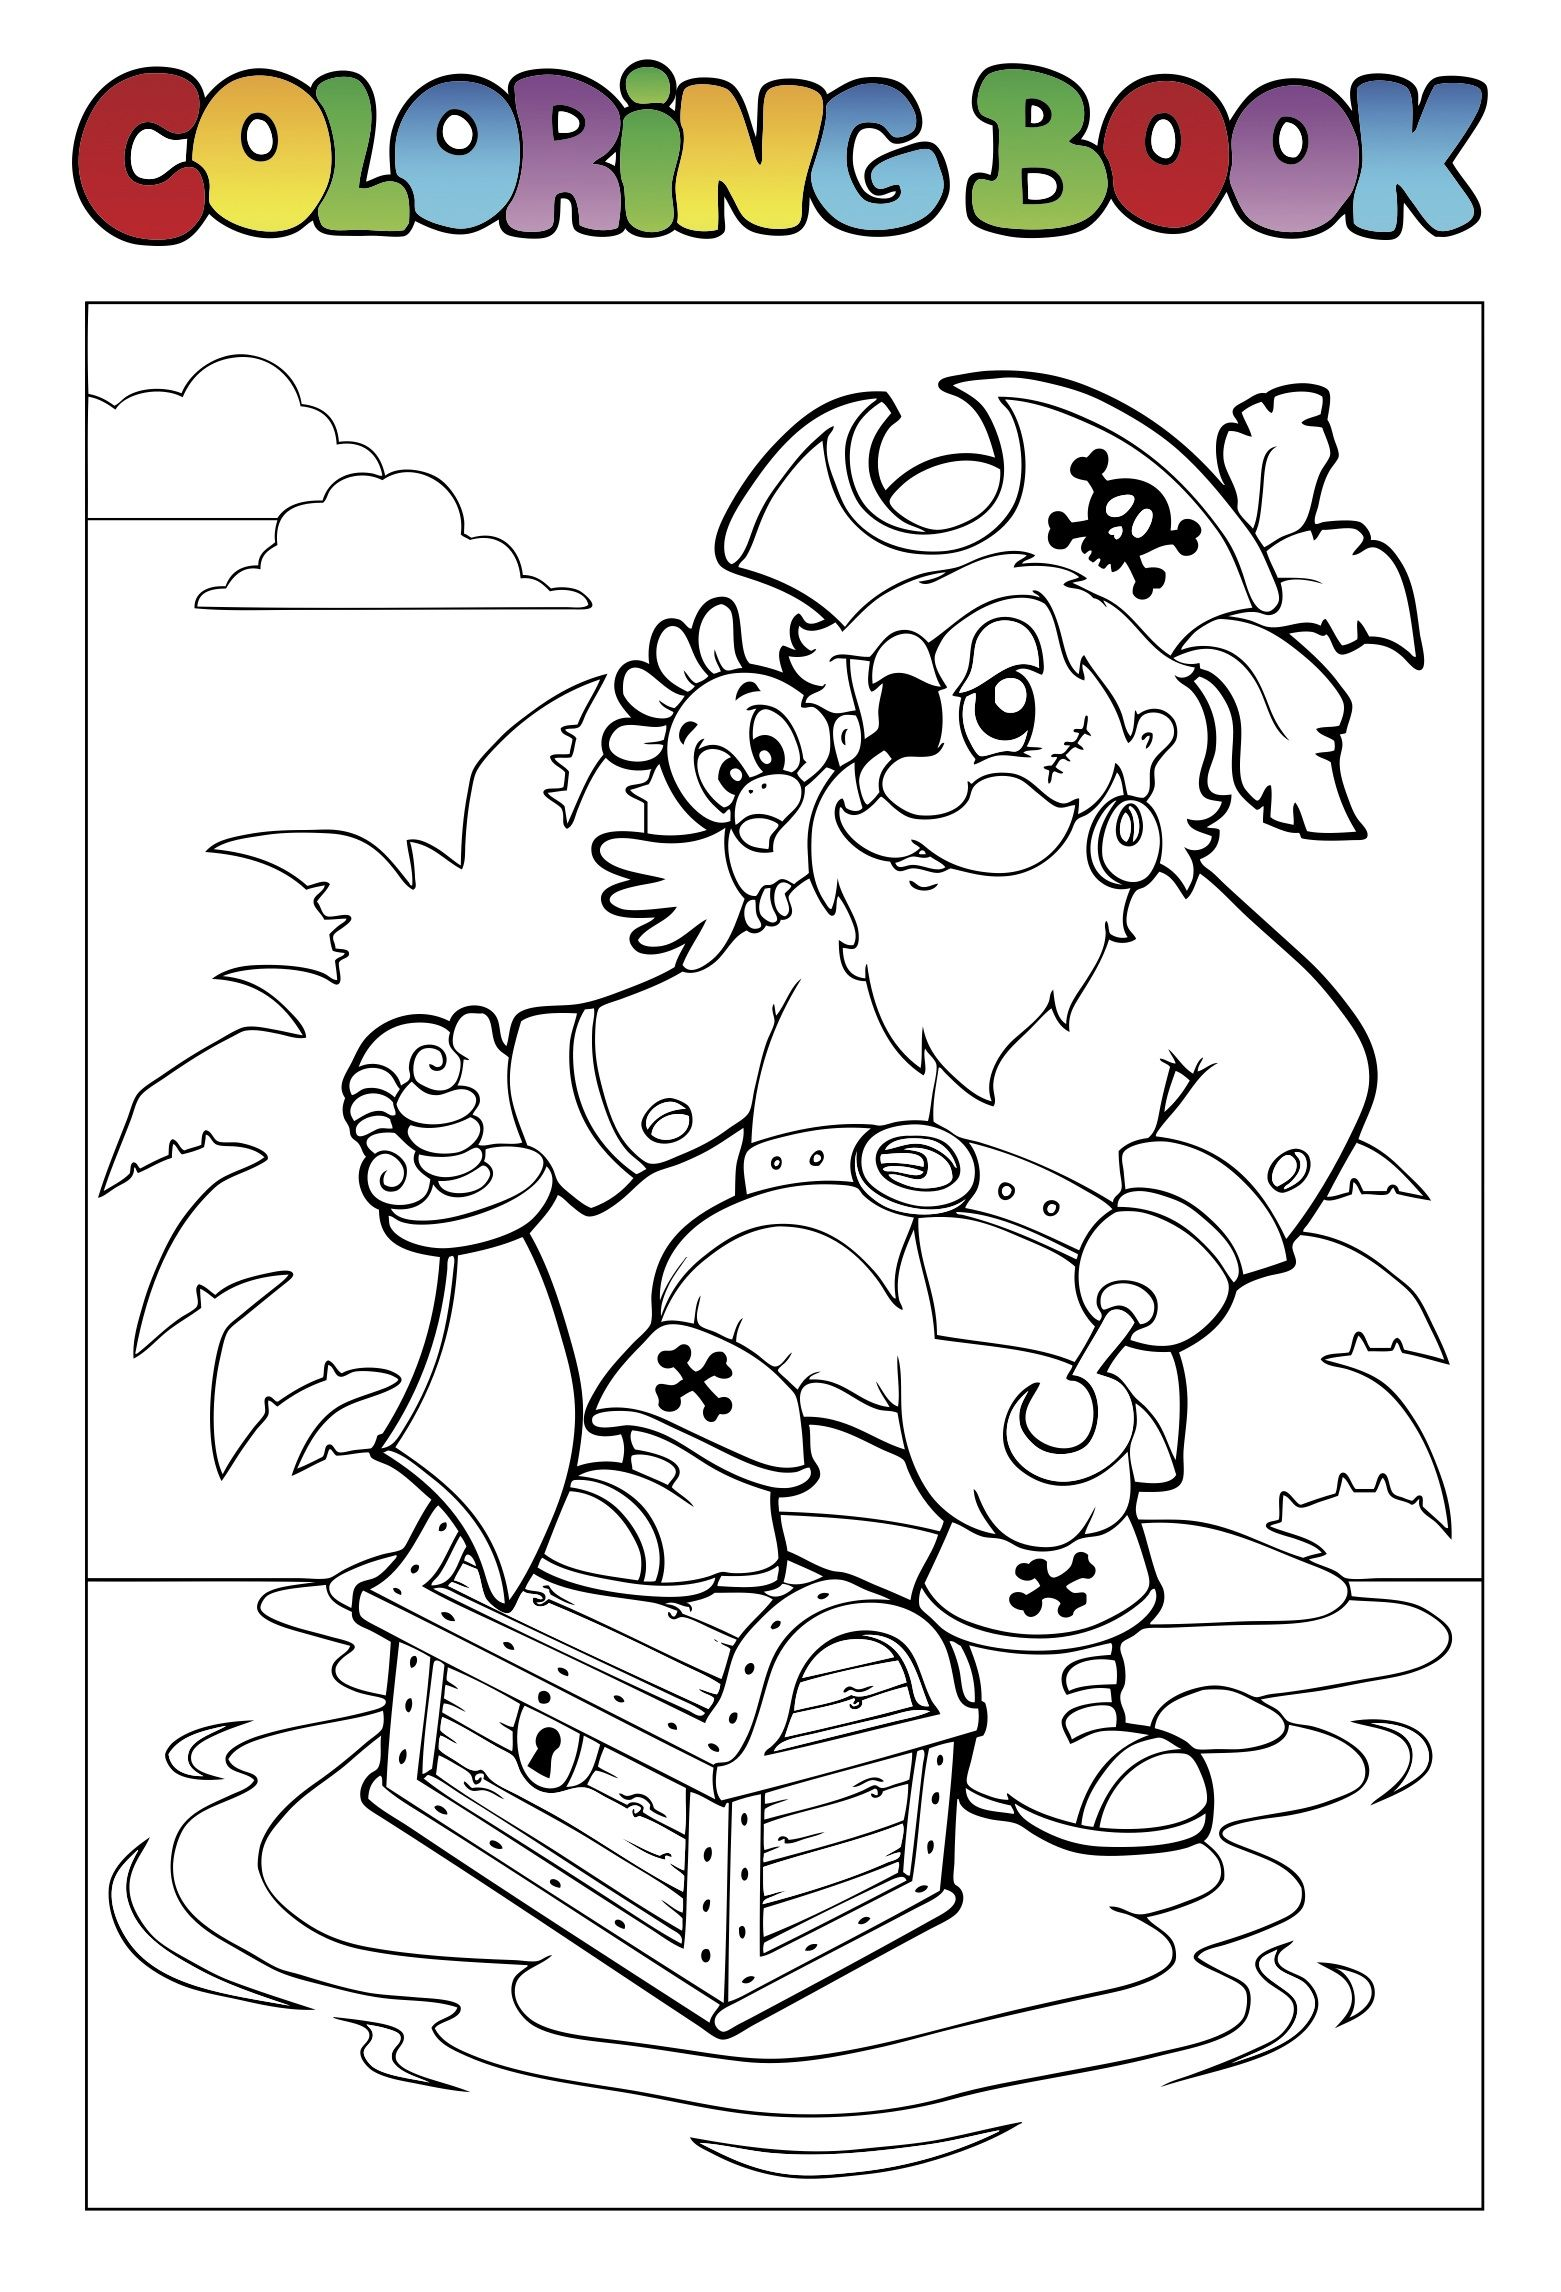 Pirate Treasure Chest Coloring Page For Kids Kiboomu Kids Songs Pirate Coloring Pages Mermaid Coloring Pages Pirate Activities